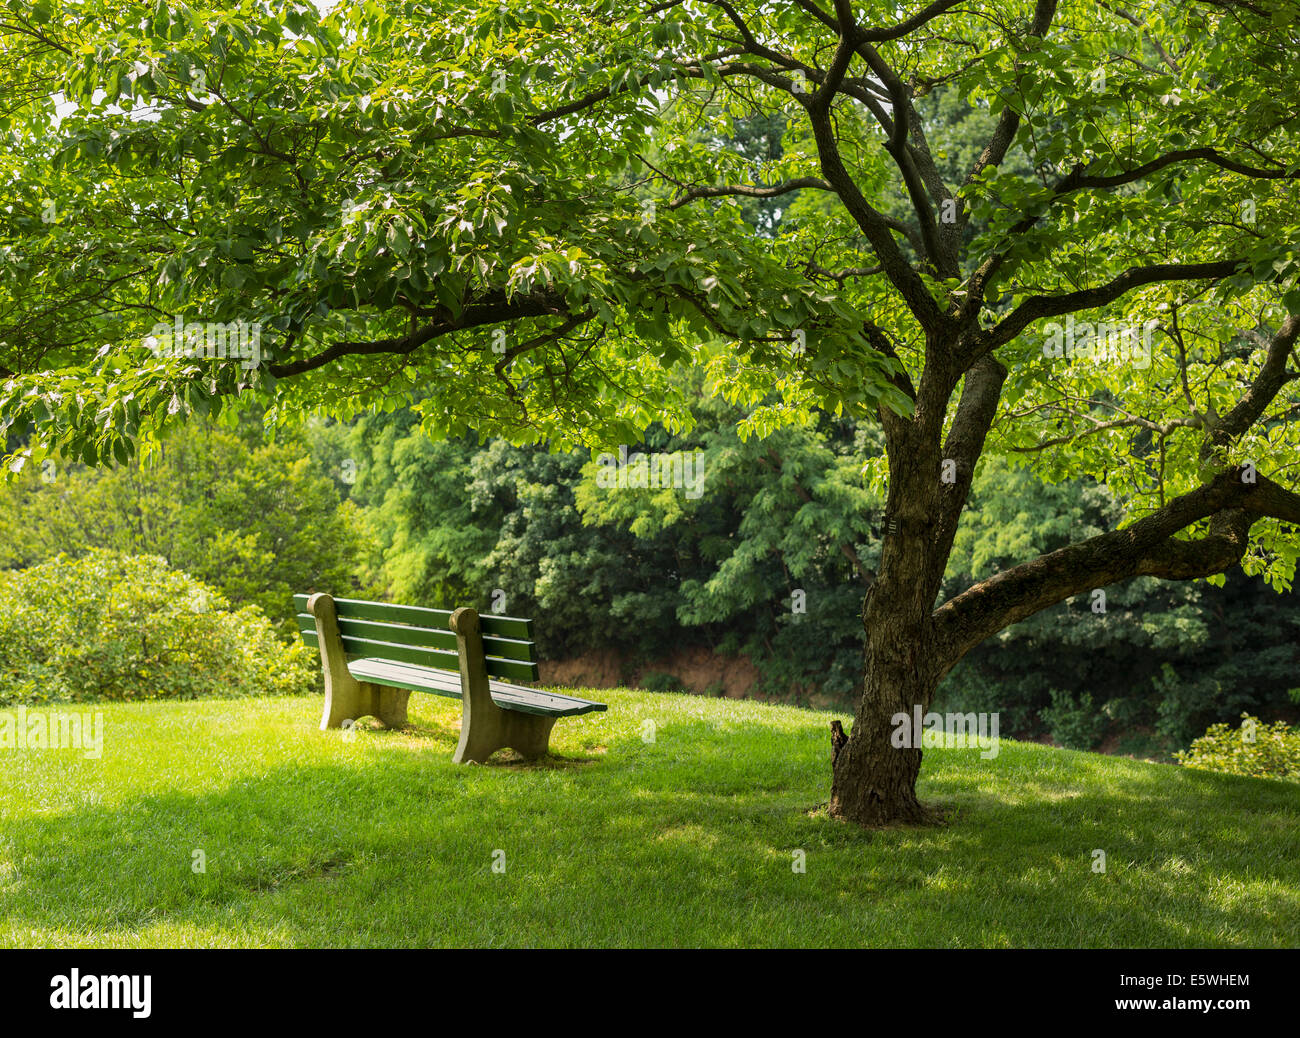 Park bench in the shade of a flowering dogwood tree in an urban park - Stock Image